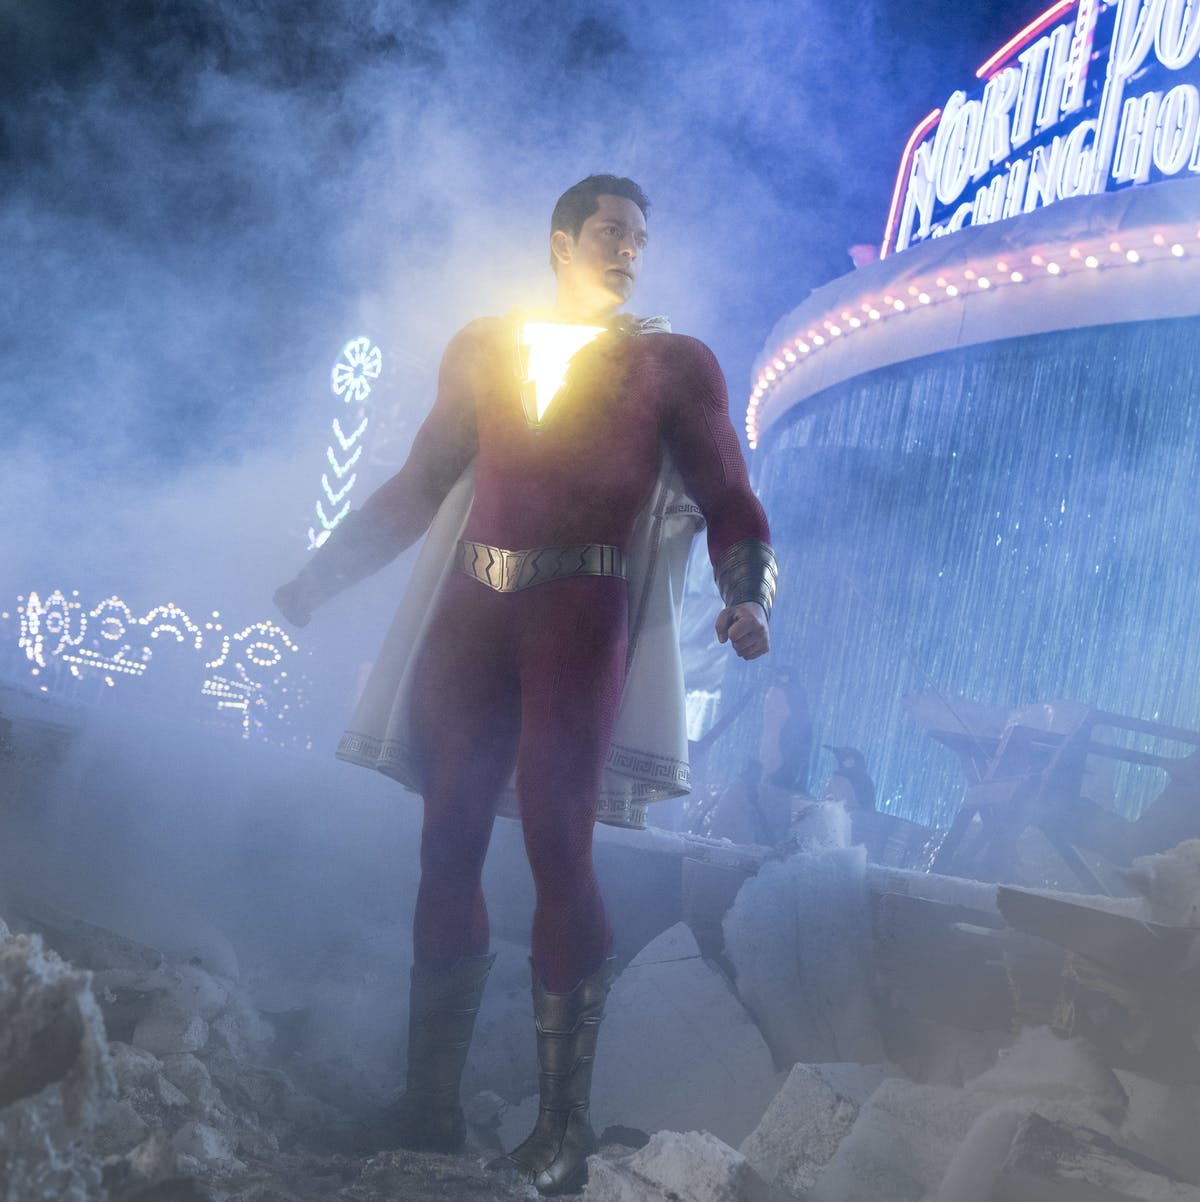 'Shazam!' Ending Explained: How They Kept the Shazam Family a Secret